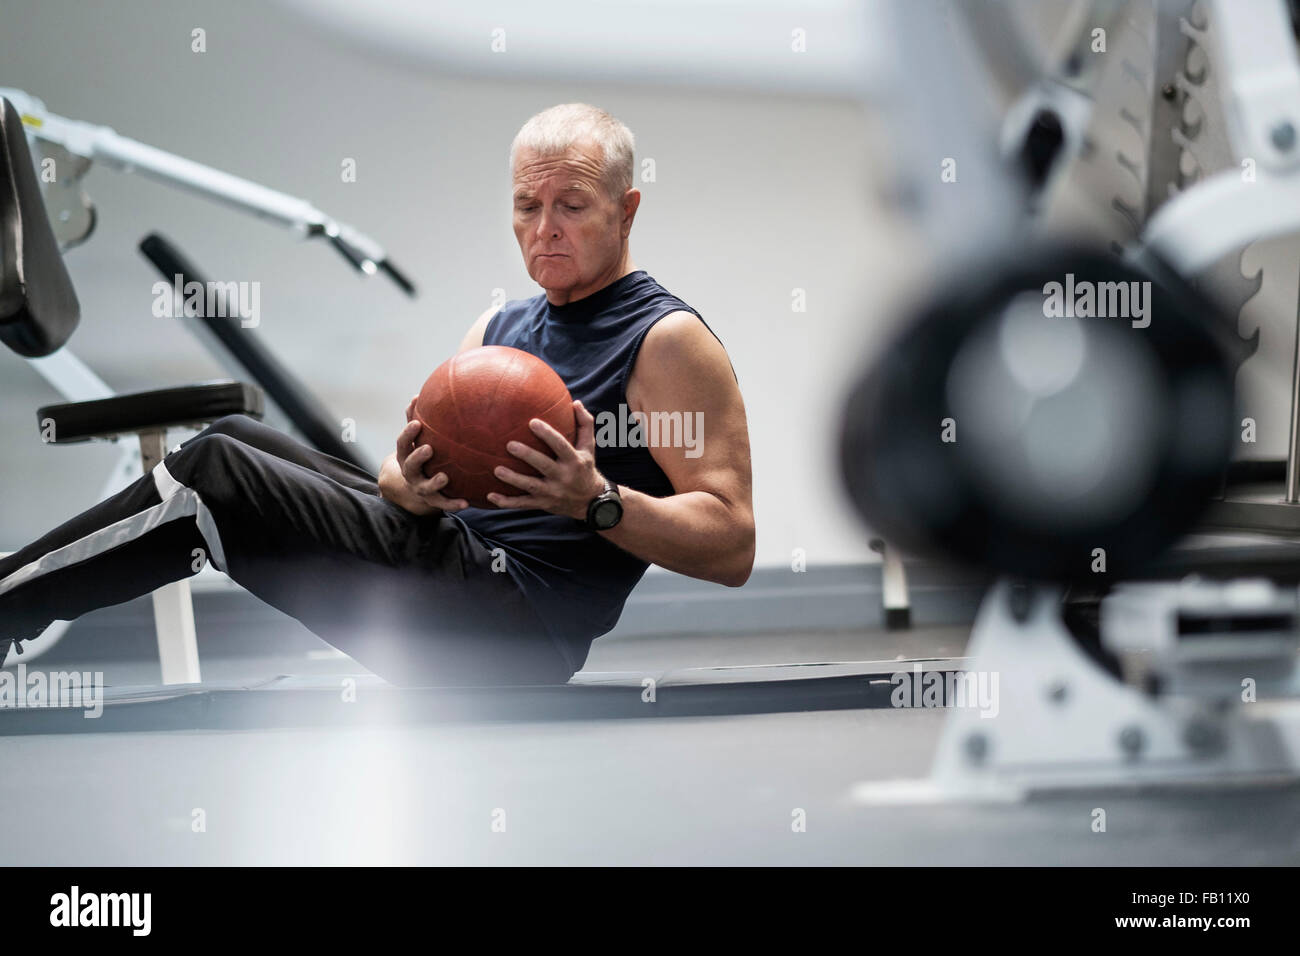 Man in health club exercising with ball - Stock Image